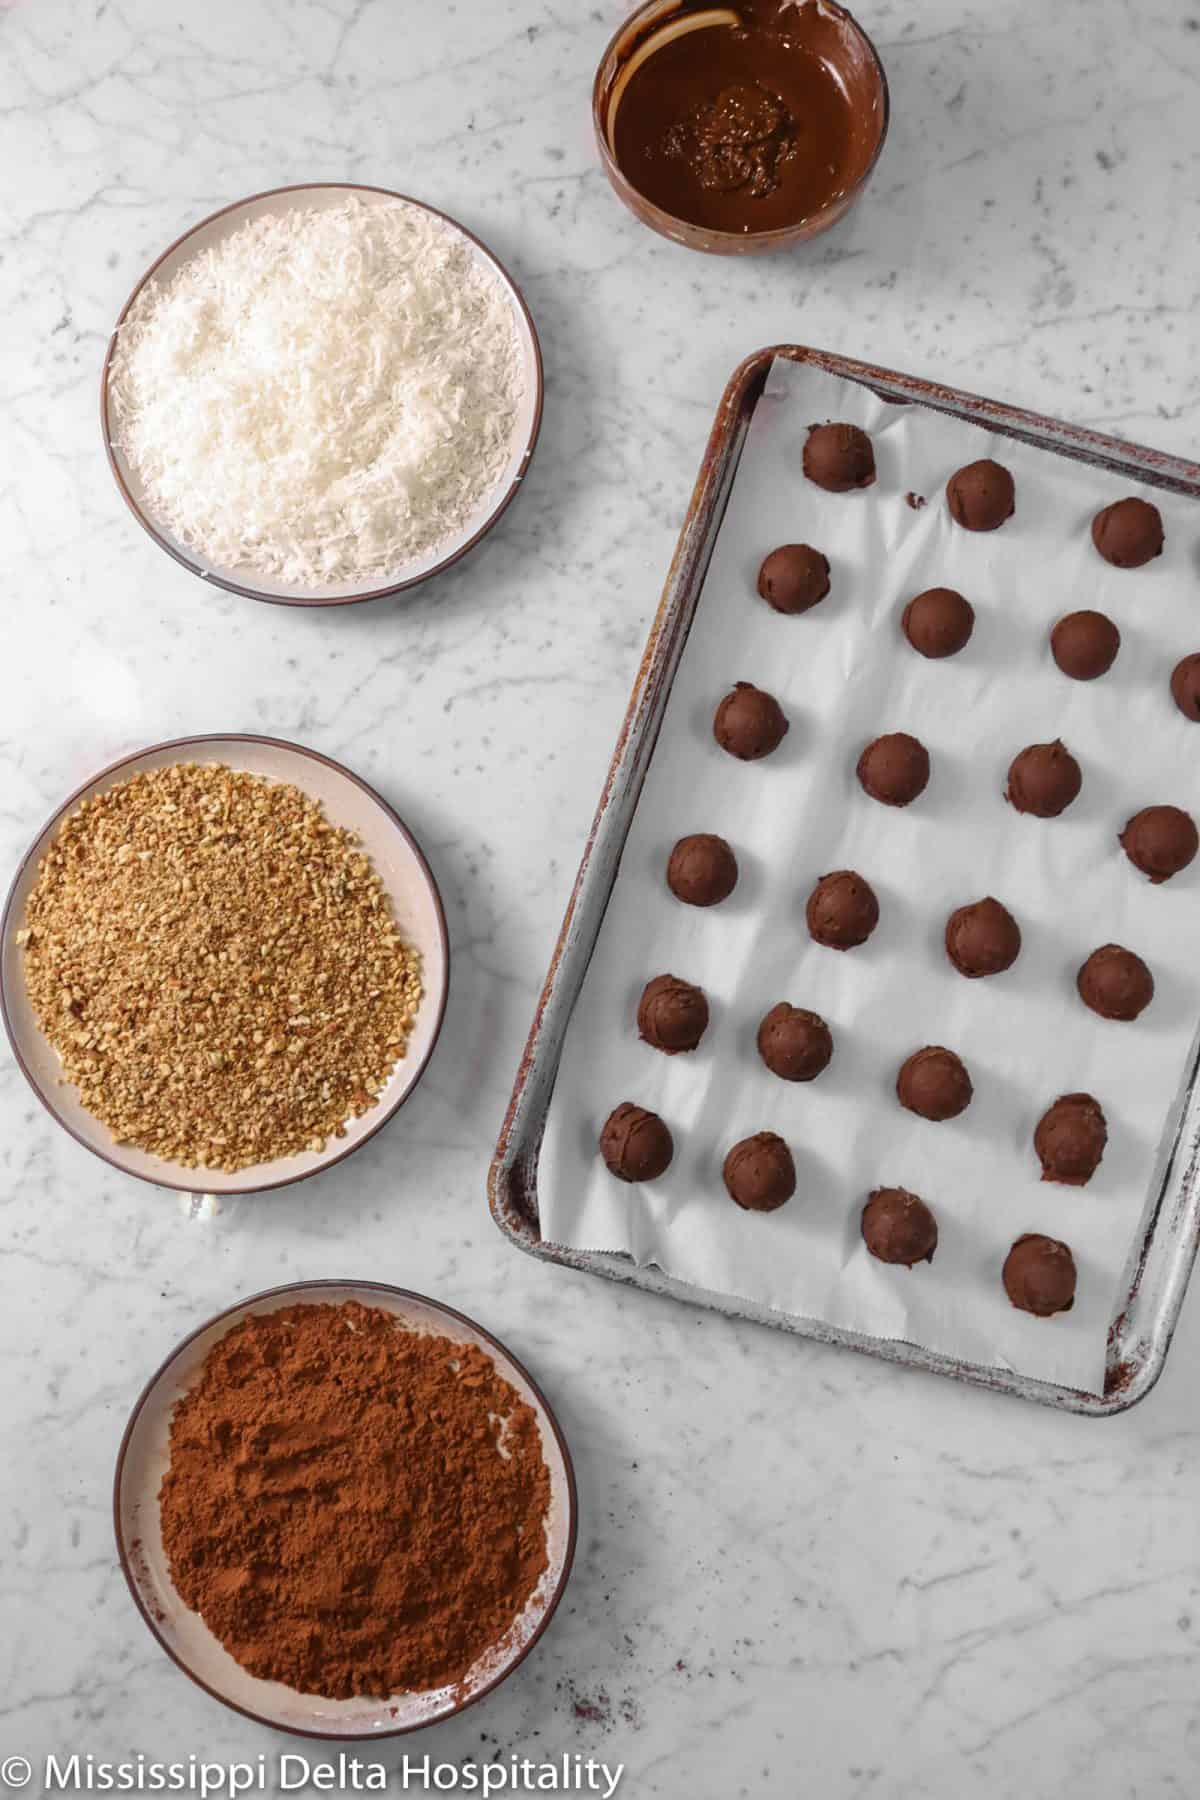 tray full of ganache balls with three plates of cocoa powder, toasted pecans, coconut flakes, and a bowl of melted chocolate